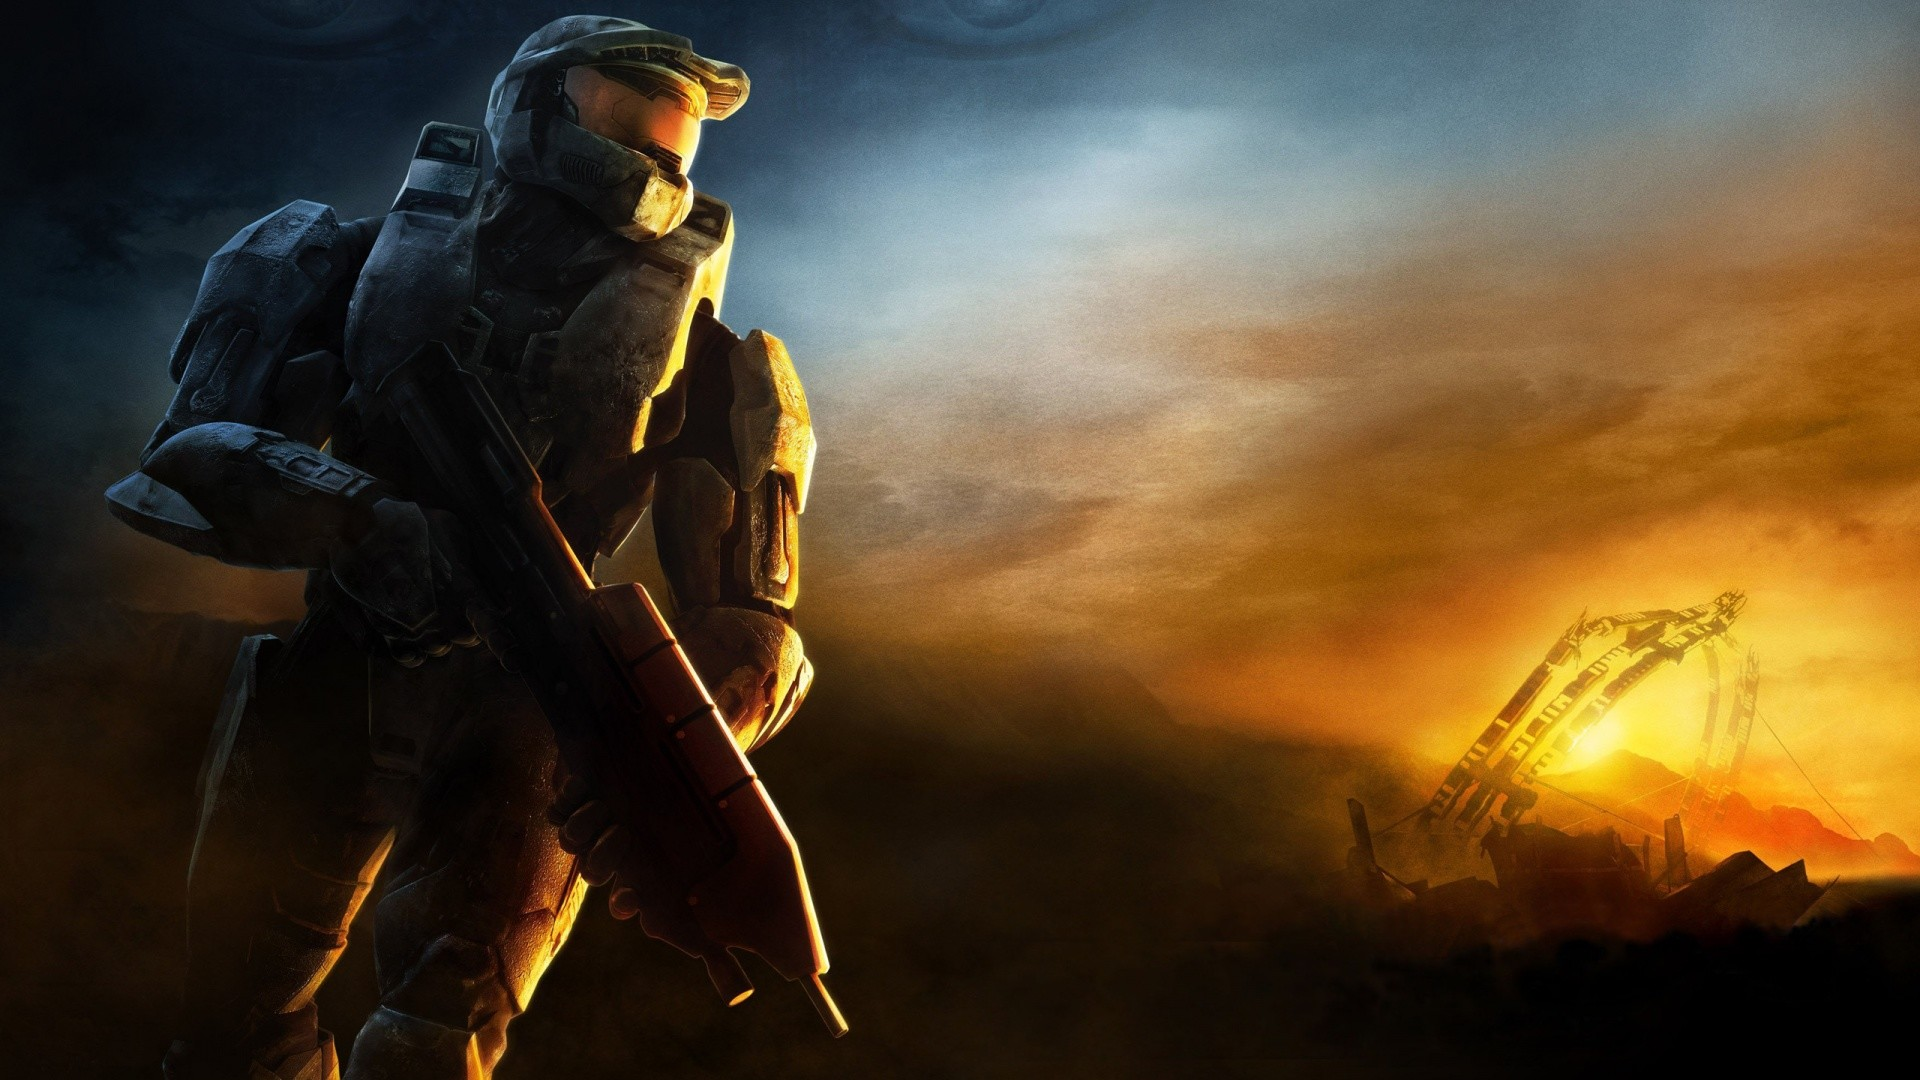 halo 3 free download for android